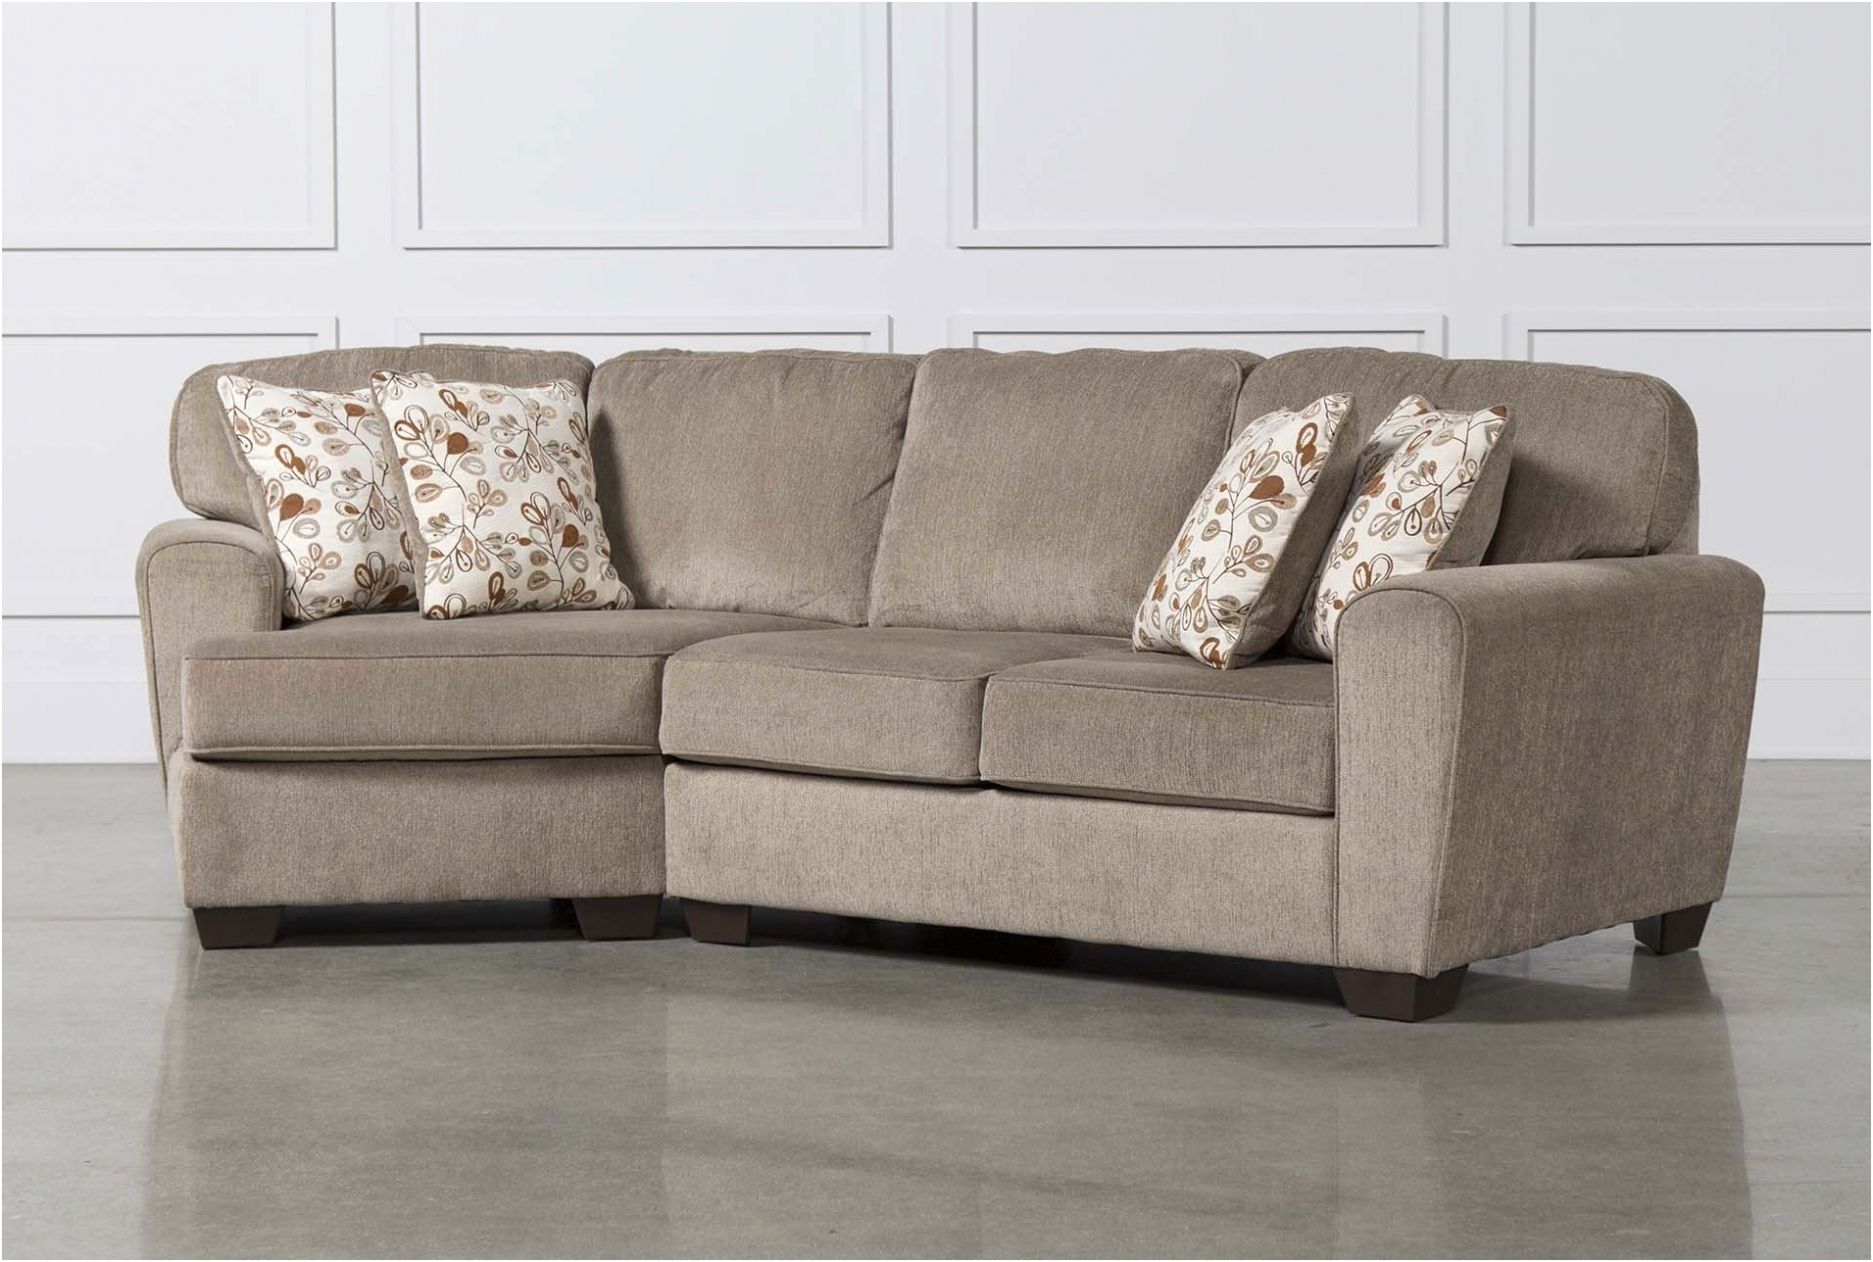 Living Spaces Sectional Sofa Bed - Sofa Design Ideas with regard to Aquarius Dark Grey 2 Piece Sectionals With Raf Chaise (Image 17 of 30)